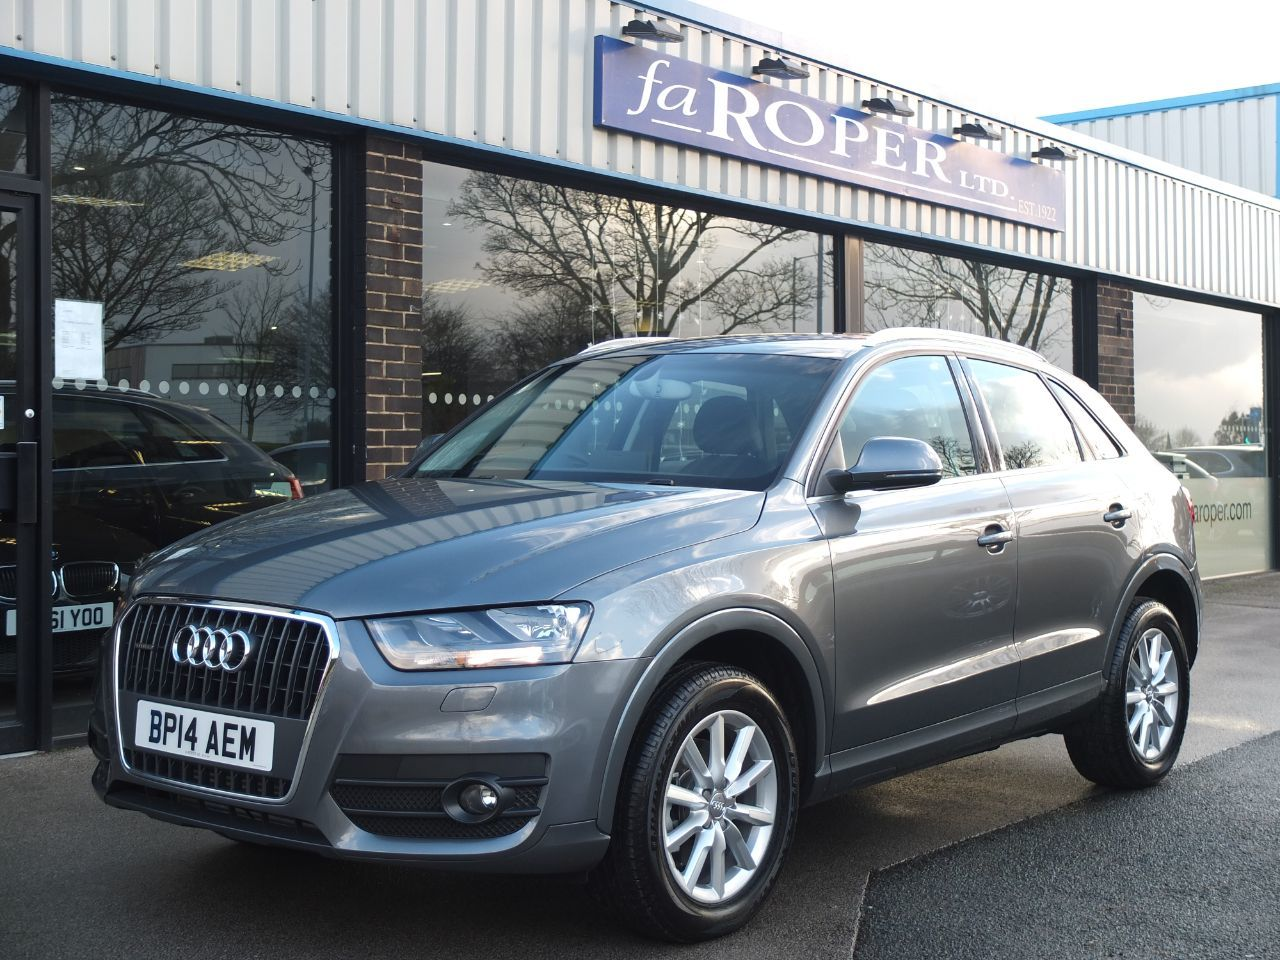 Audi Q3 2.0 TDI [177] Quattro SE 5dr S Tronic Estate Diesel Monsoon Grey MetallicAudi Q3 2.0 TDI [177] Quattro SE 5dr S Tronic Estate Diesel Monsoon Grey Metallic at fa Roper Ltd Bradford